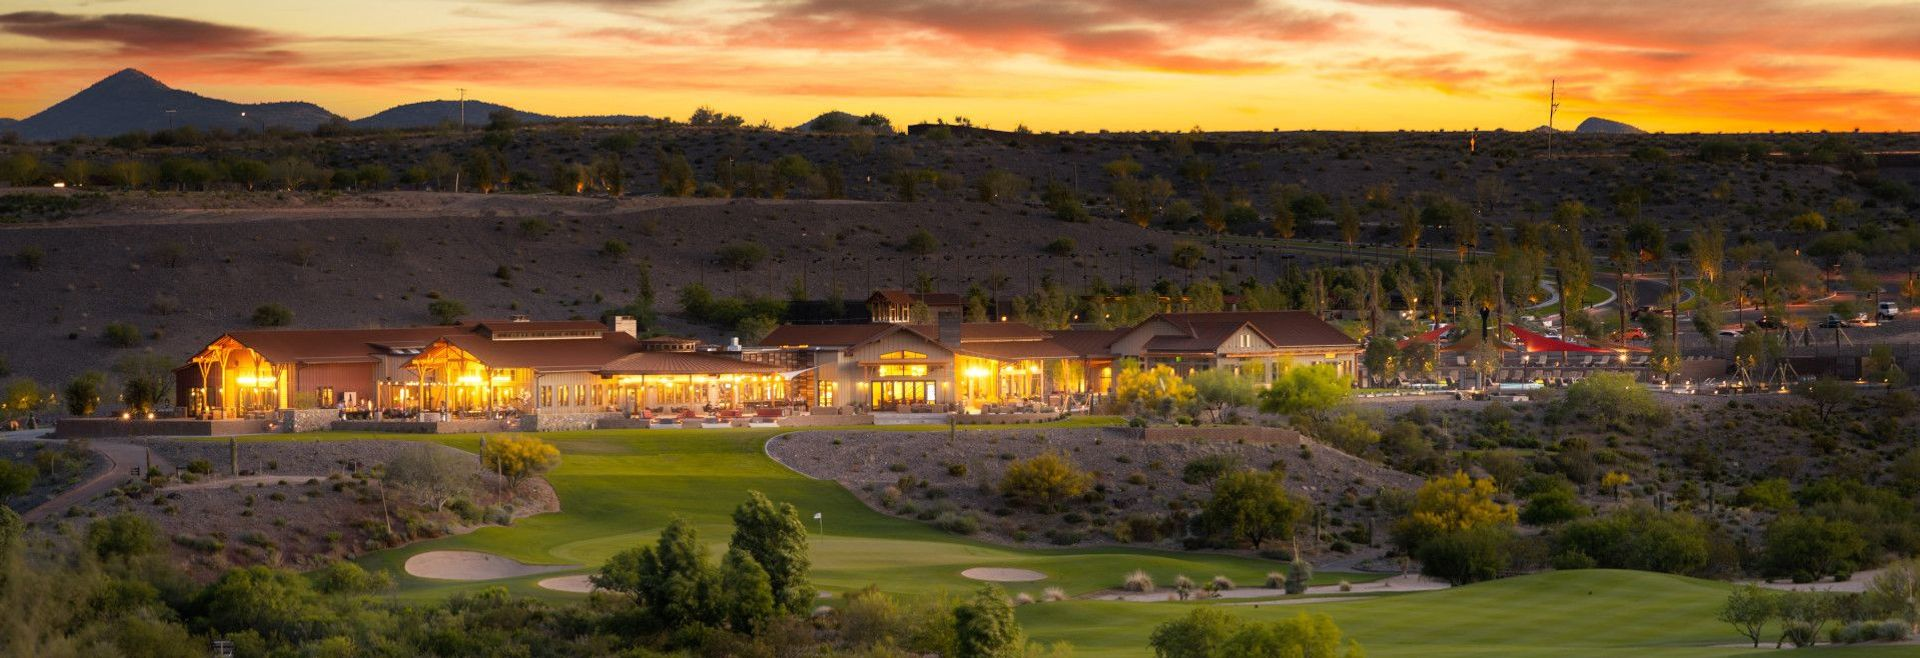 Resort Club at Wickenburg Ranch